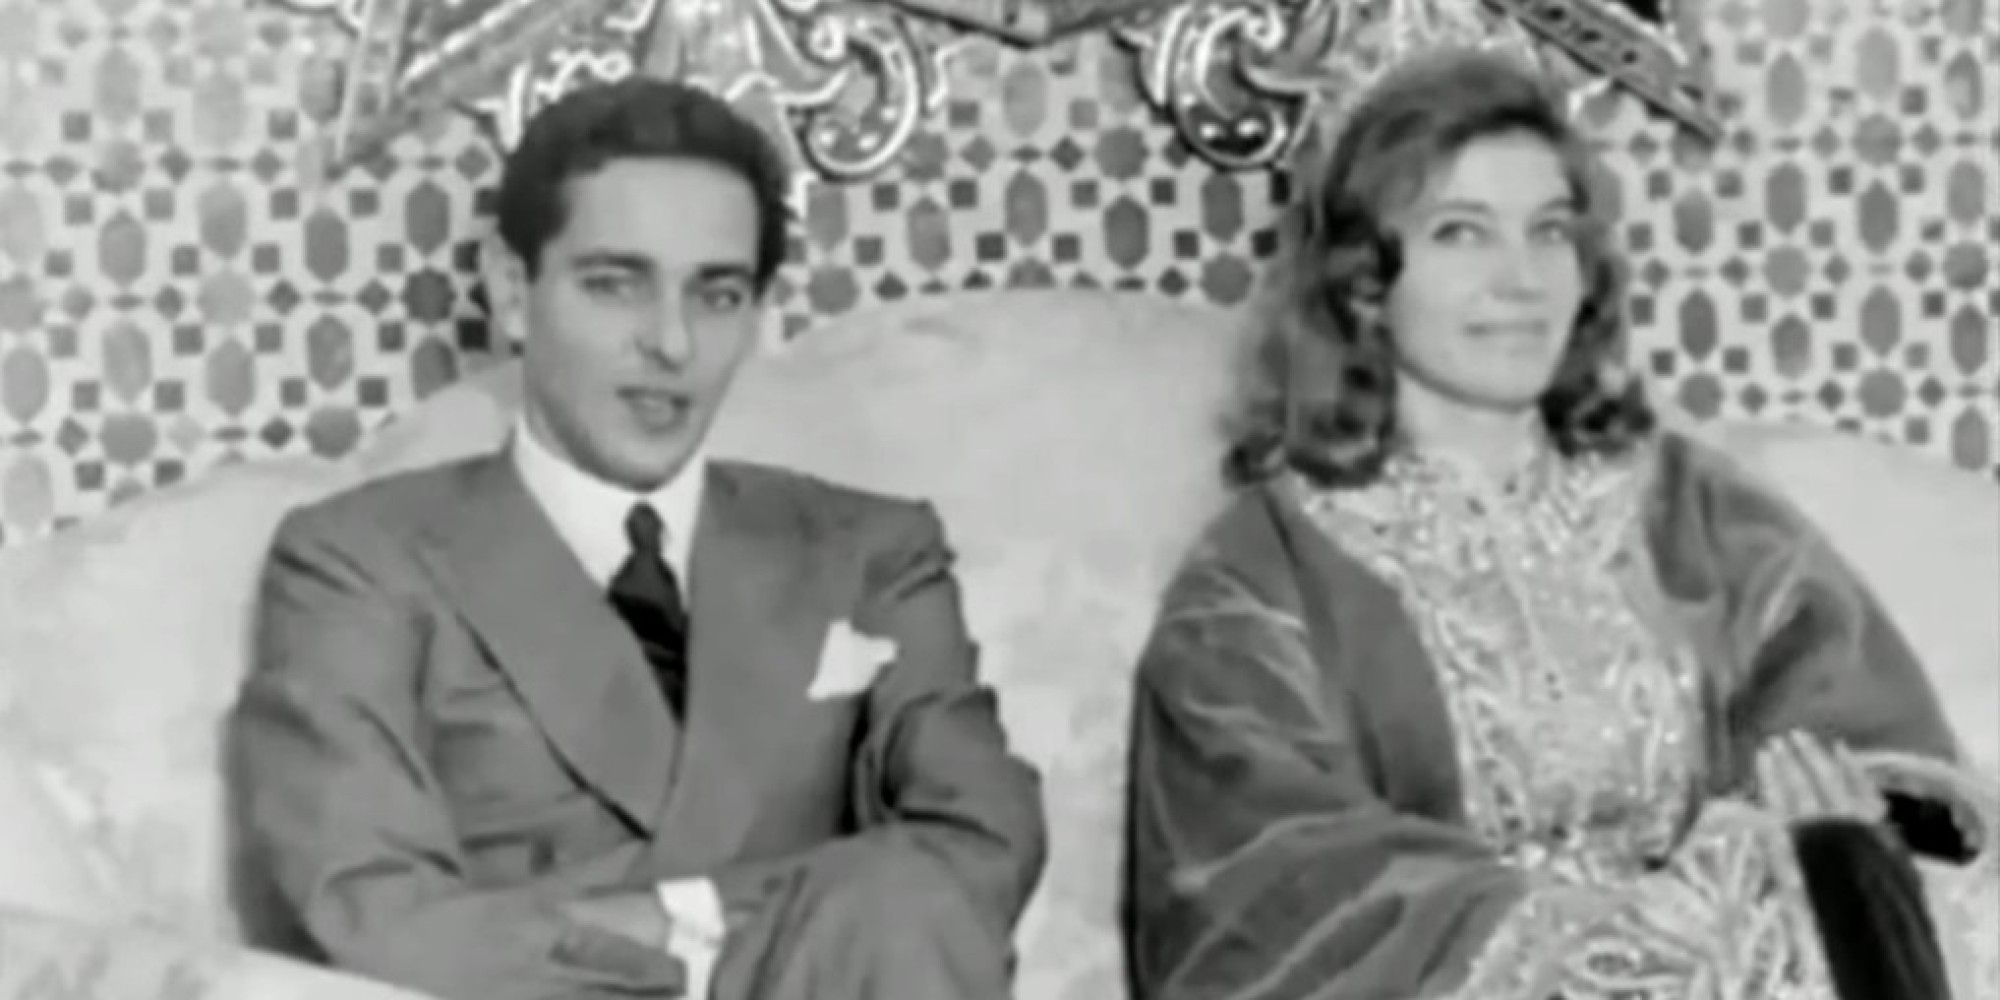 Prince moulay Abdallah, and his wife princess Lamia Solh